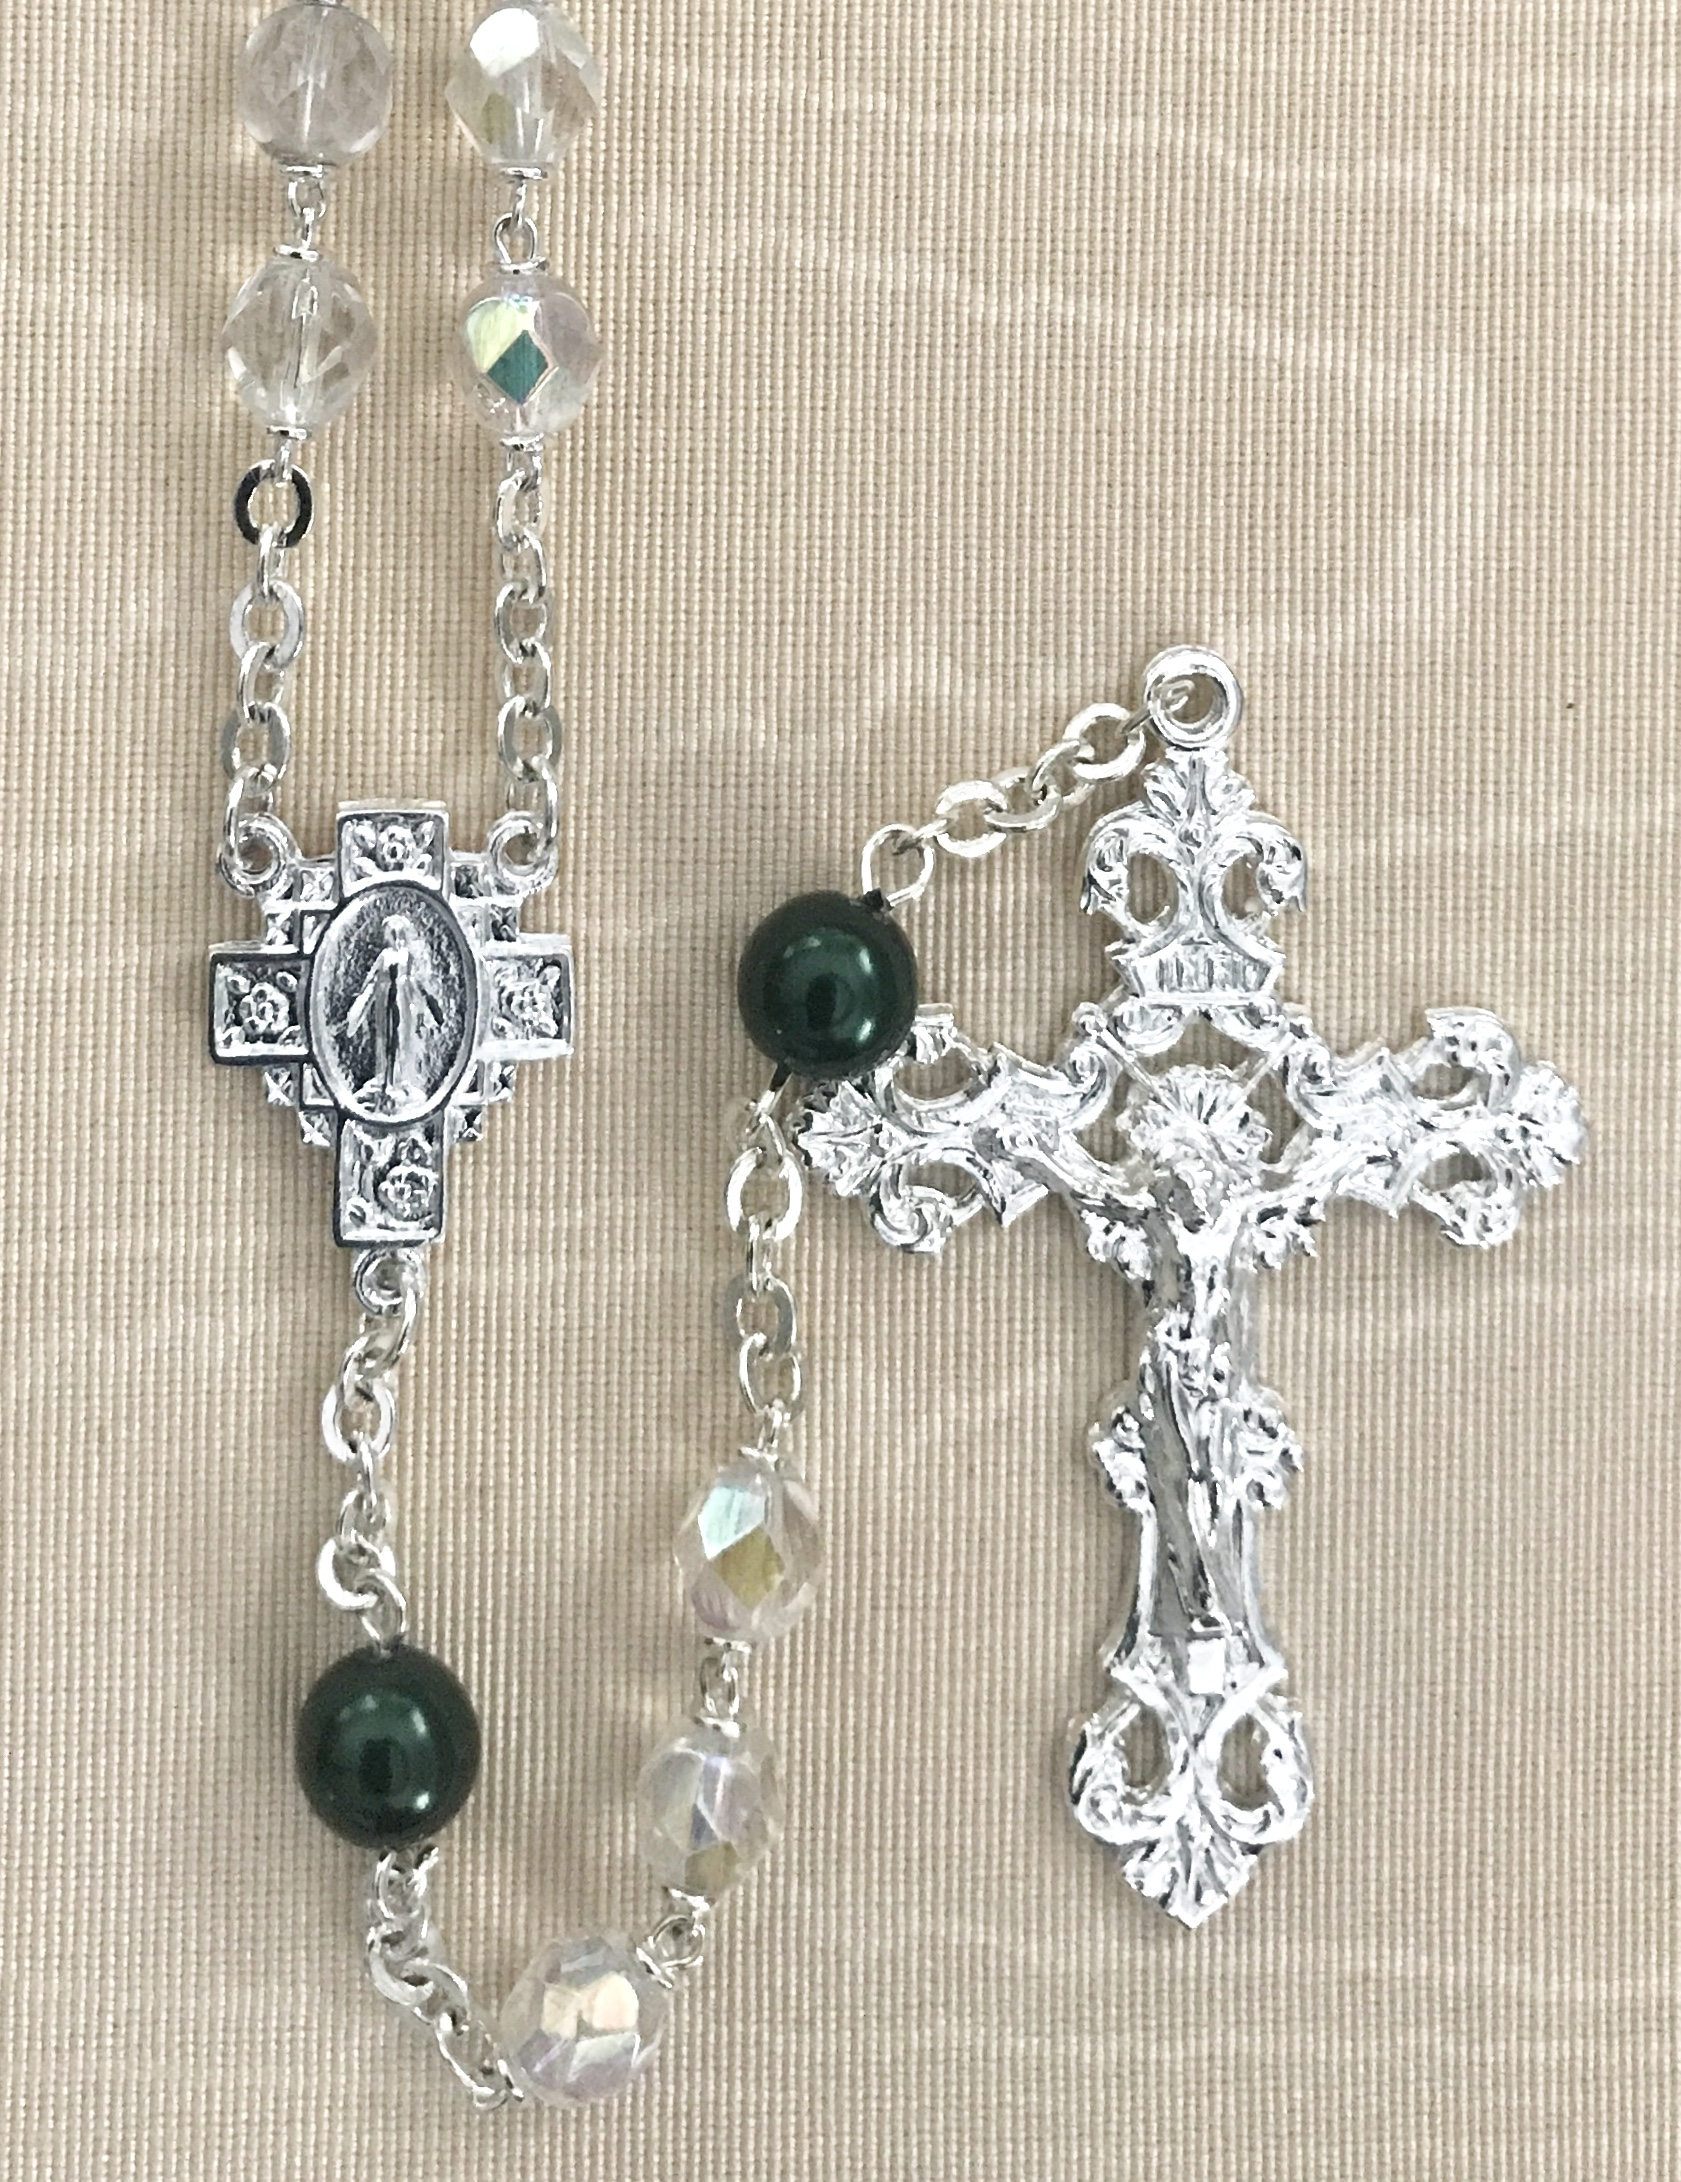 May 7mm CRYSTAL AB with EMERALD PEARL OUR FATHER BEADS S.S. PLATE LOC-LINK - GIFT BOXED